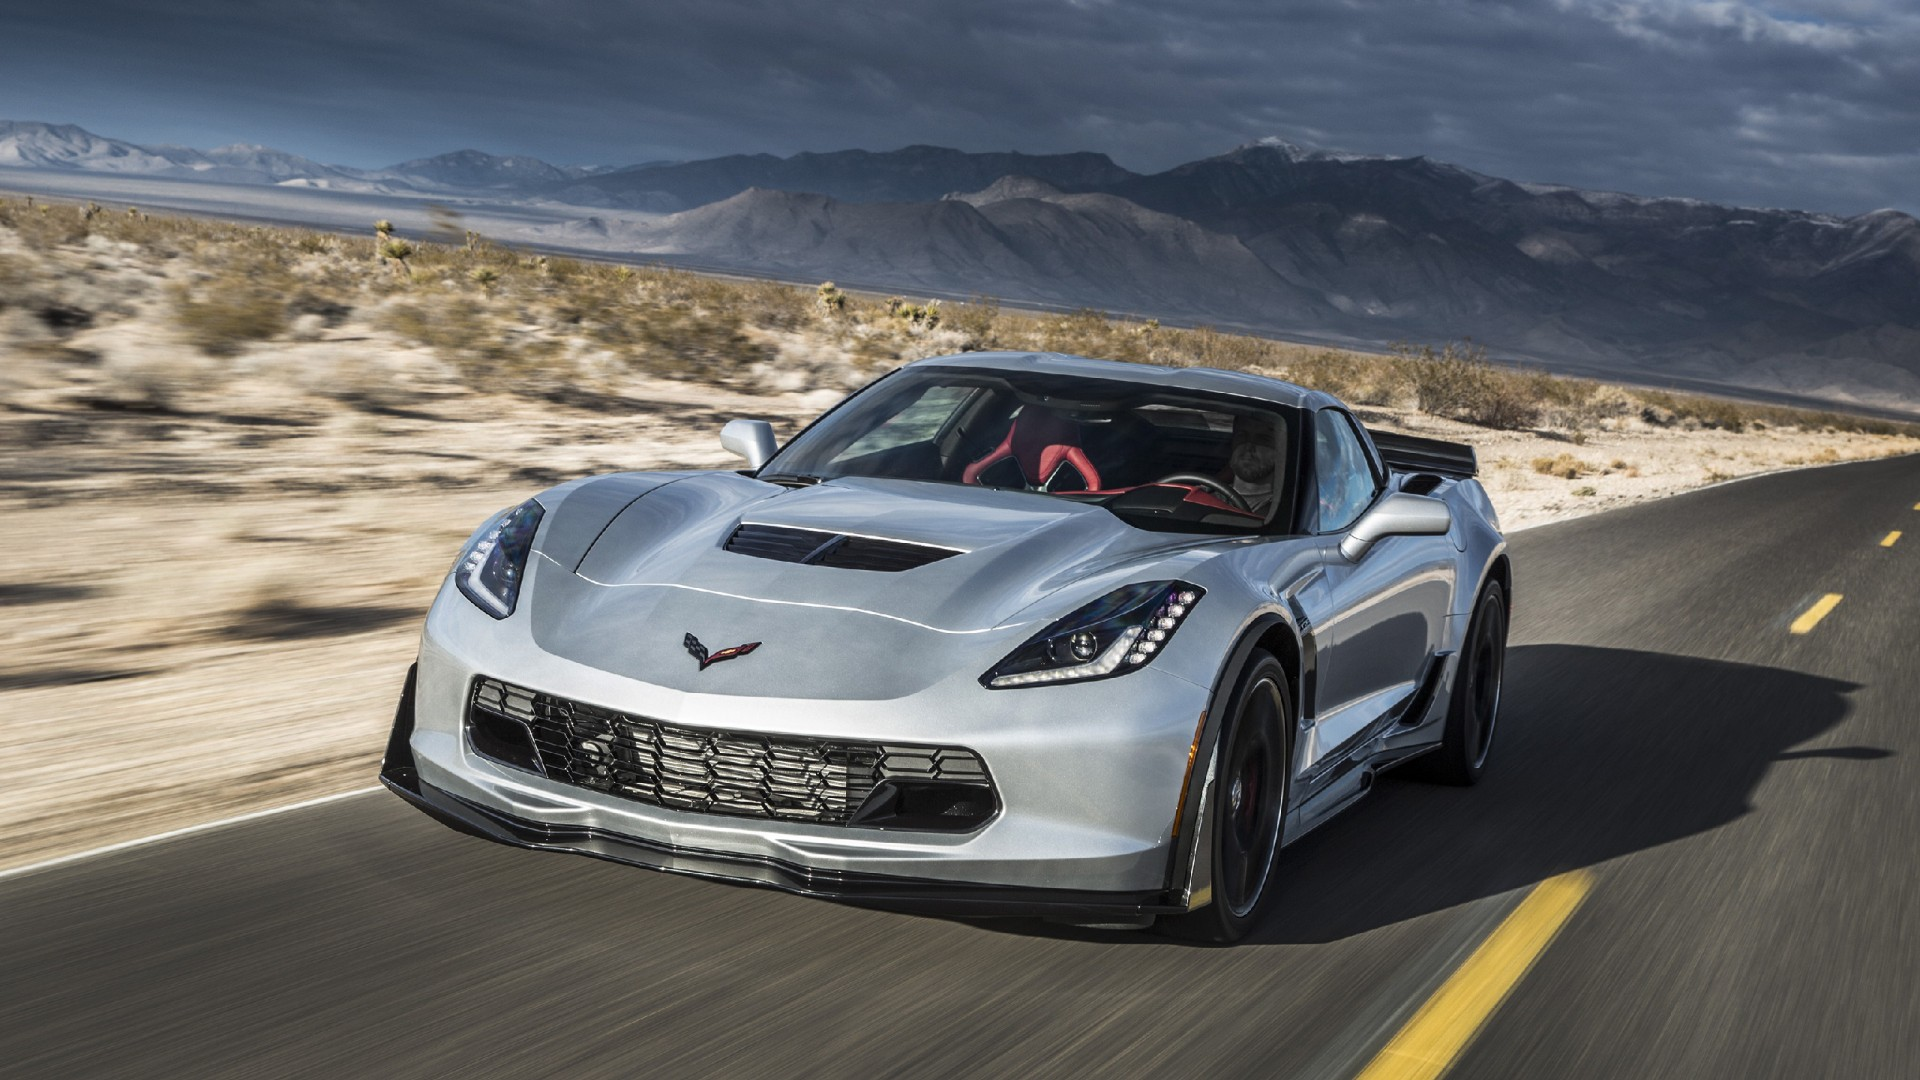 2016 Chevrolet Corvette Z06 1920x1080 (1080p) - Wallpaper ...